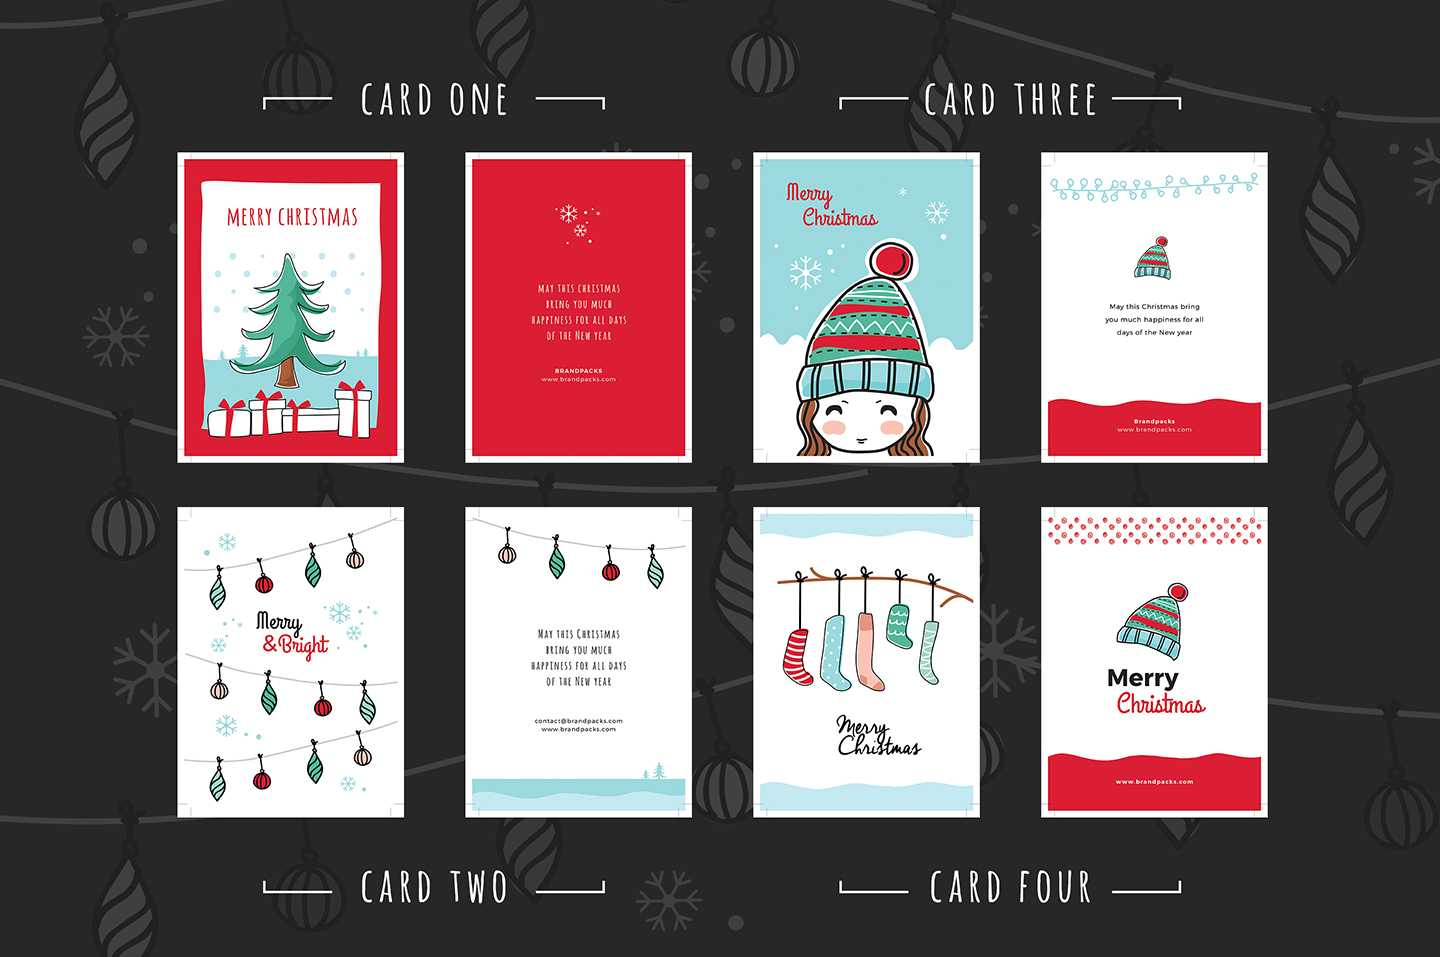 Free Christmas Card Templates For Photoshop & Illustrator Regarding Adobe Illustrator Christmas Card Template